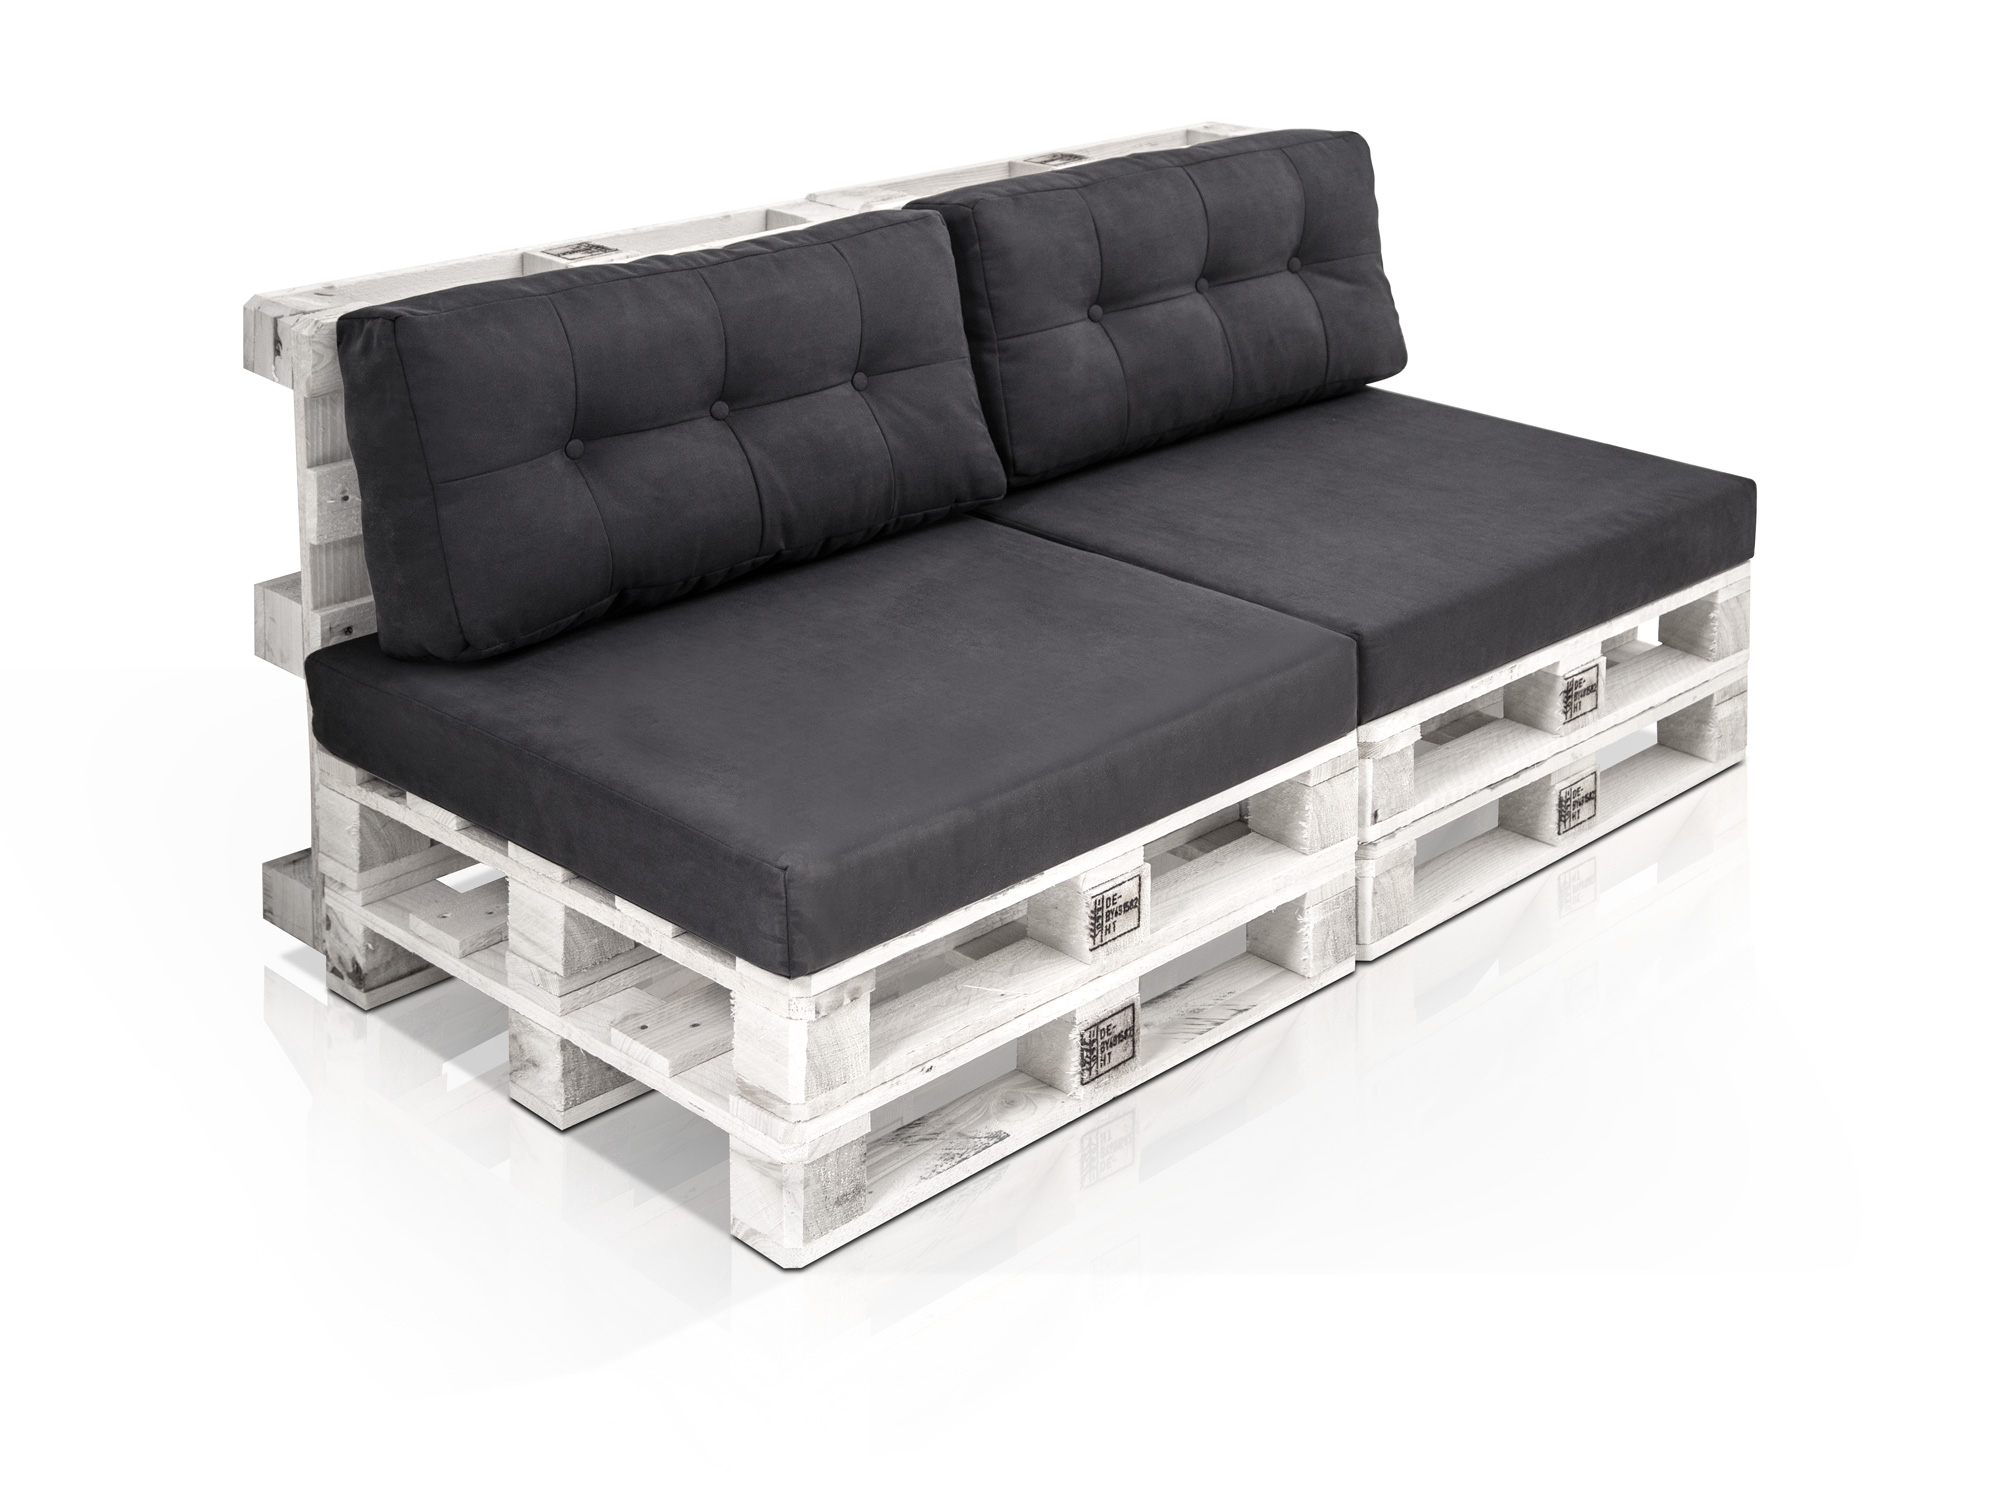 paletti 2 sitzer sofa aus paletten weiss lackiert ohne. Black Bedroom Furniture Sets. Home Design Ideas